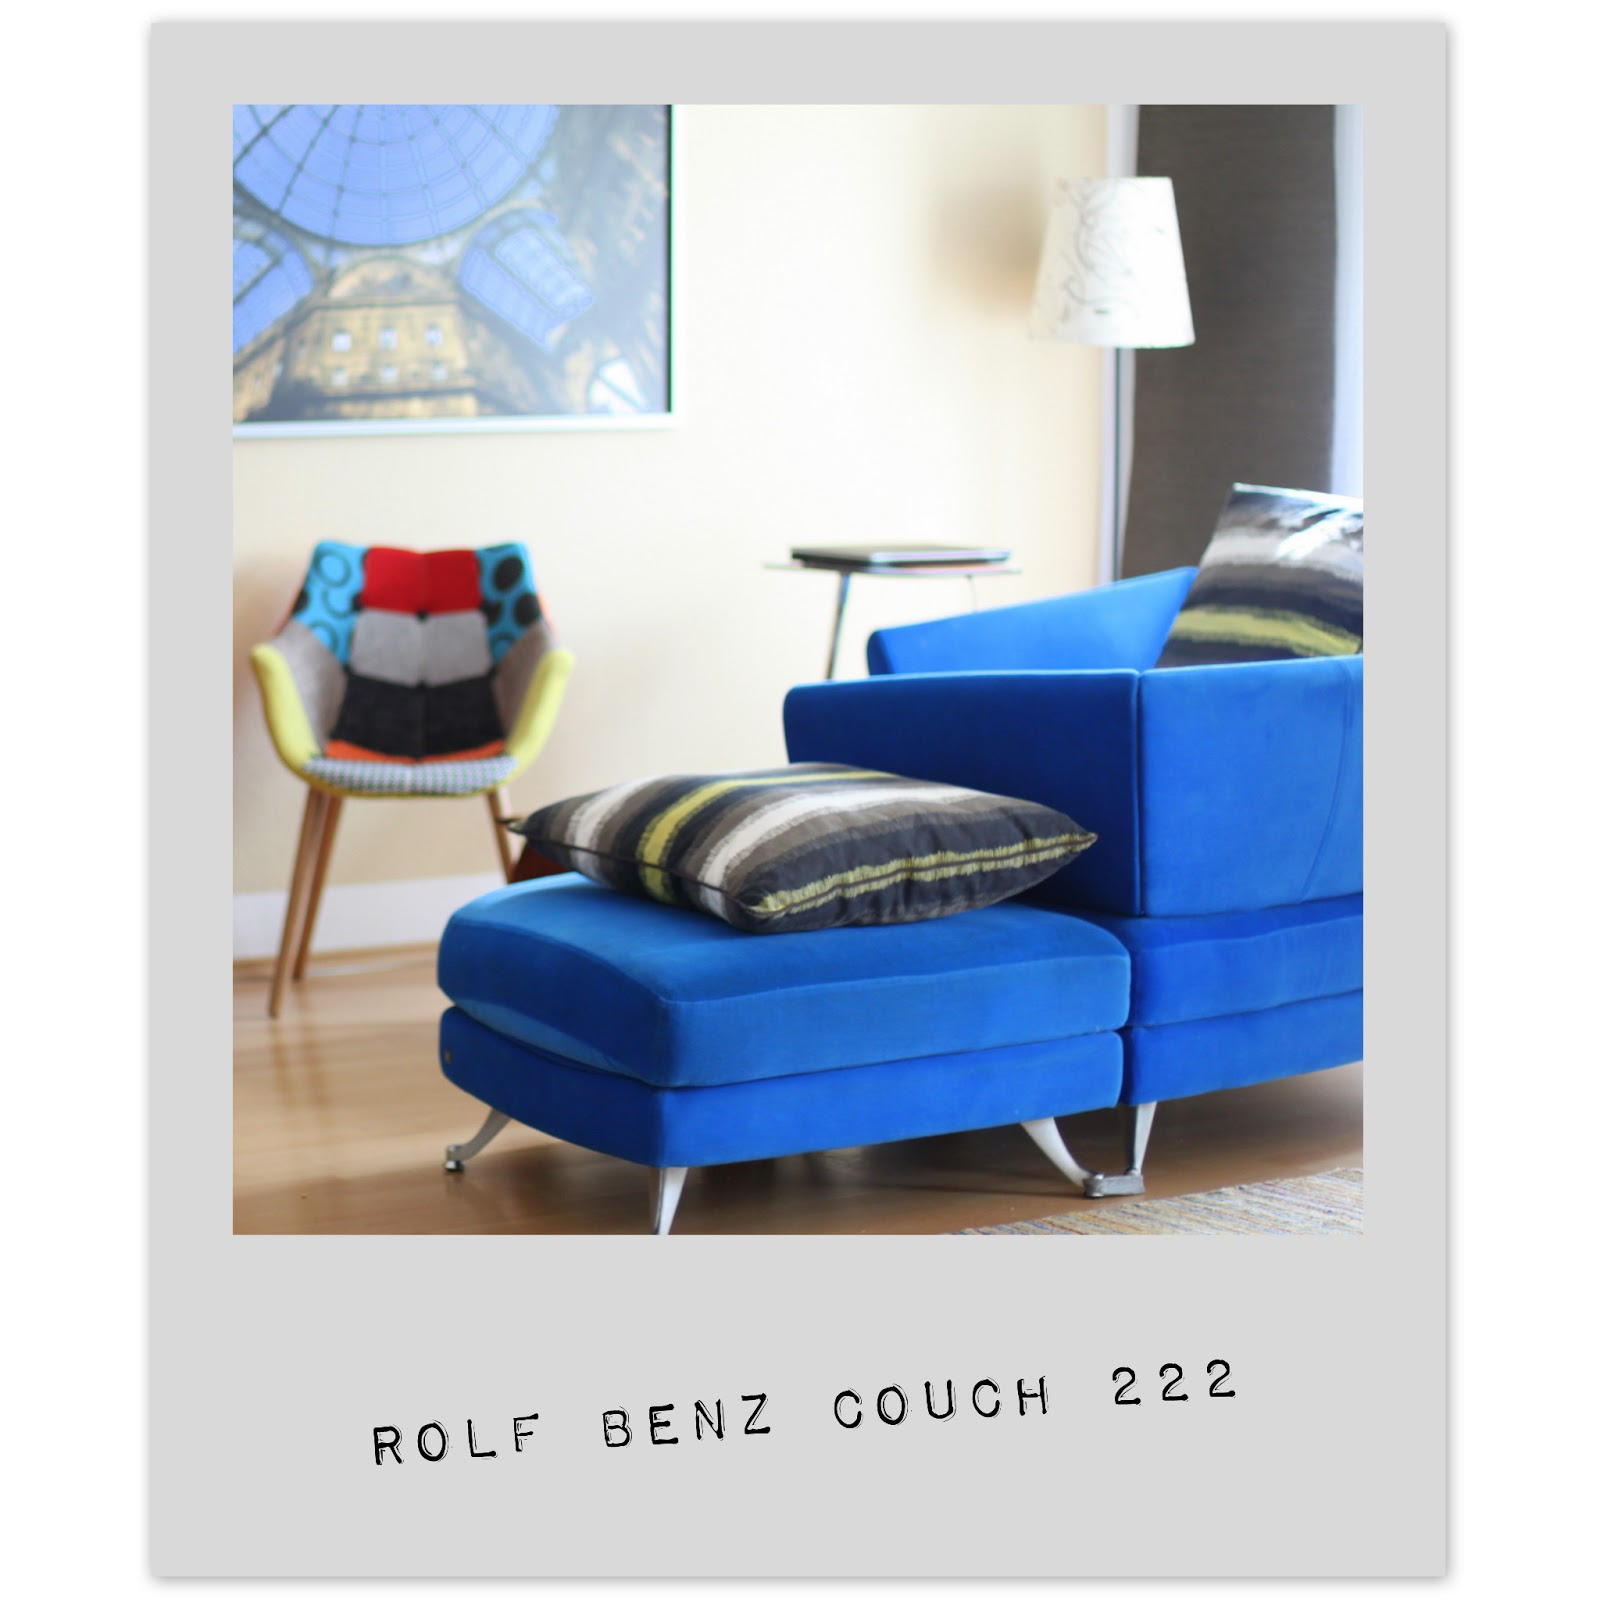 Rolf Benz Modular Sofa 222 Paecy I Pato Blog Rolf Benz Couch 222